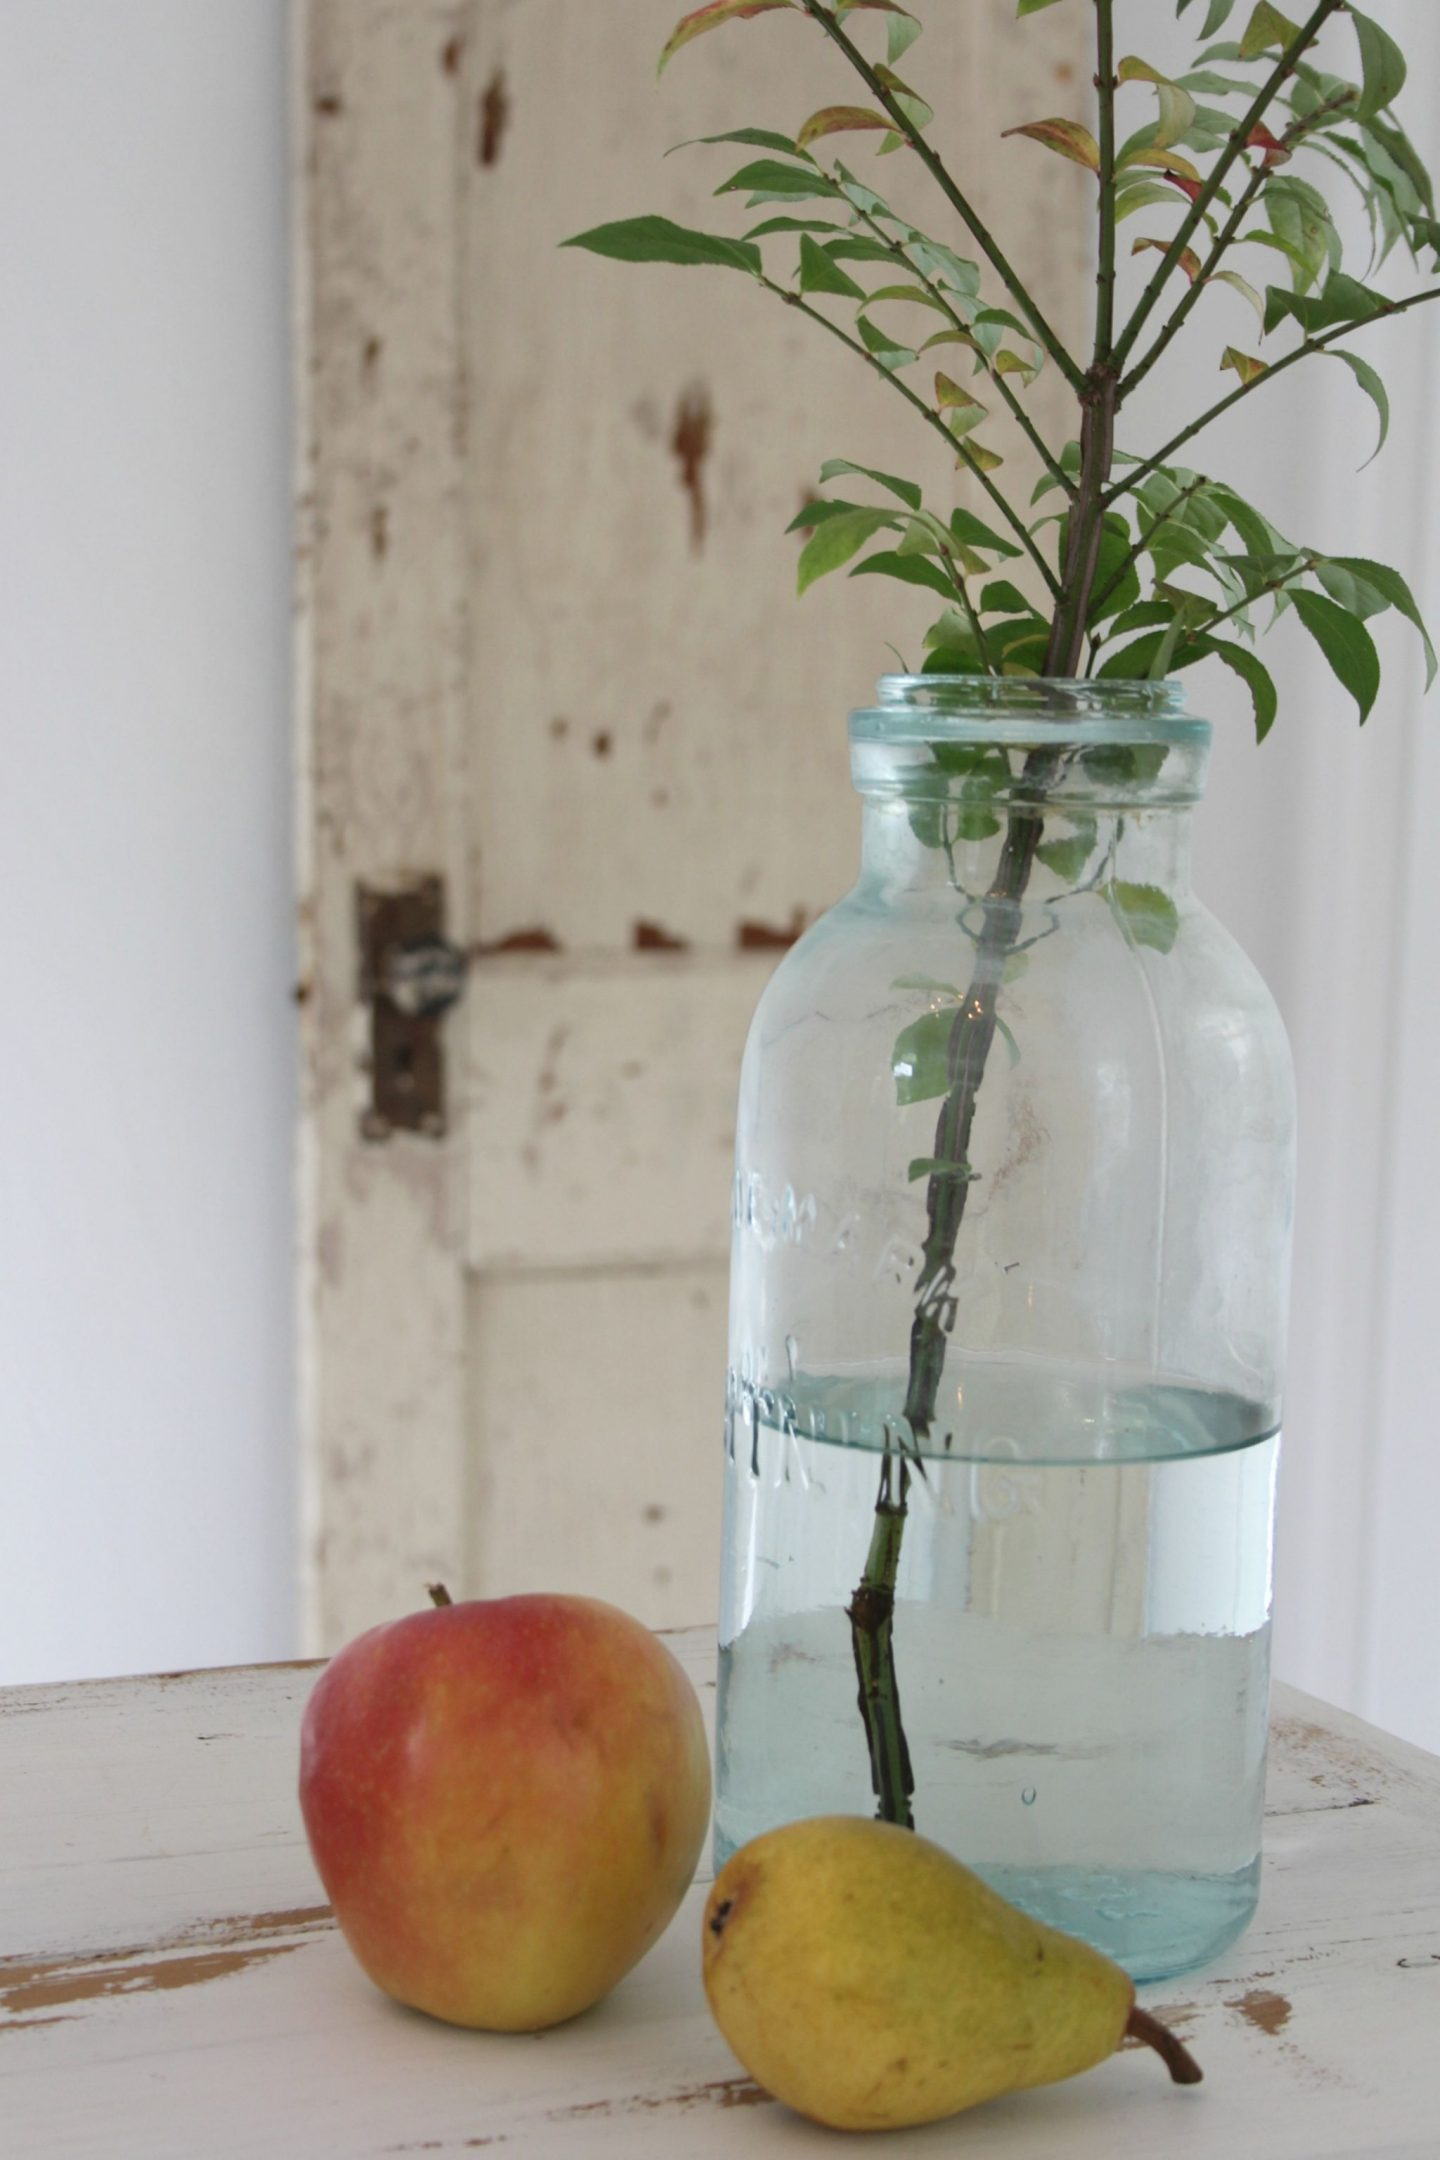 Still life with vintage door, apple, pear, and aqua bottle with branch by Hello Lovely Studio.